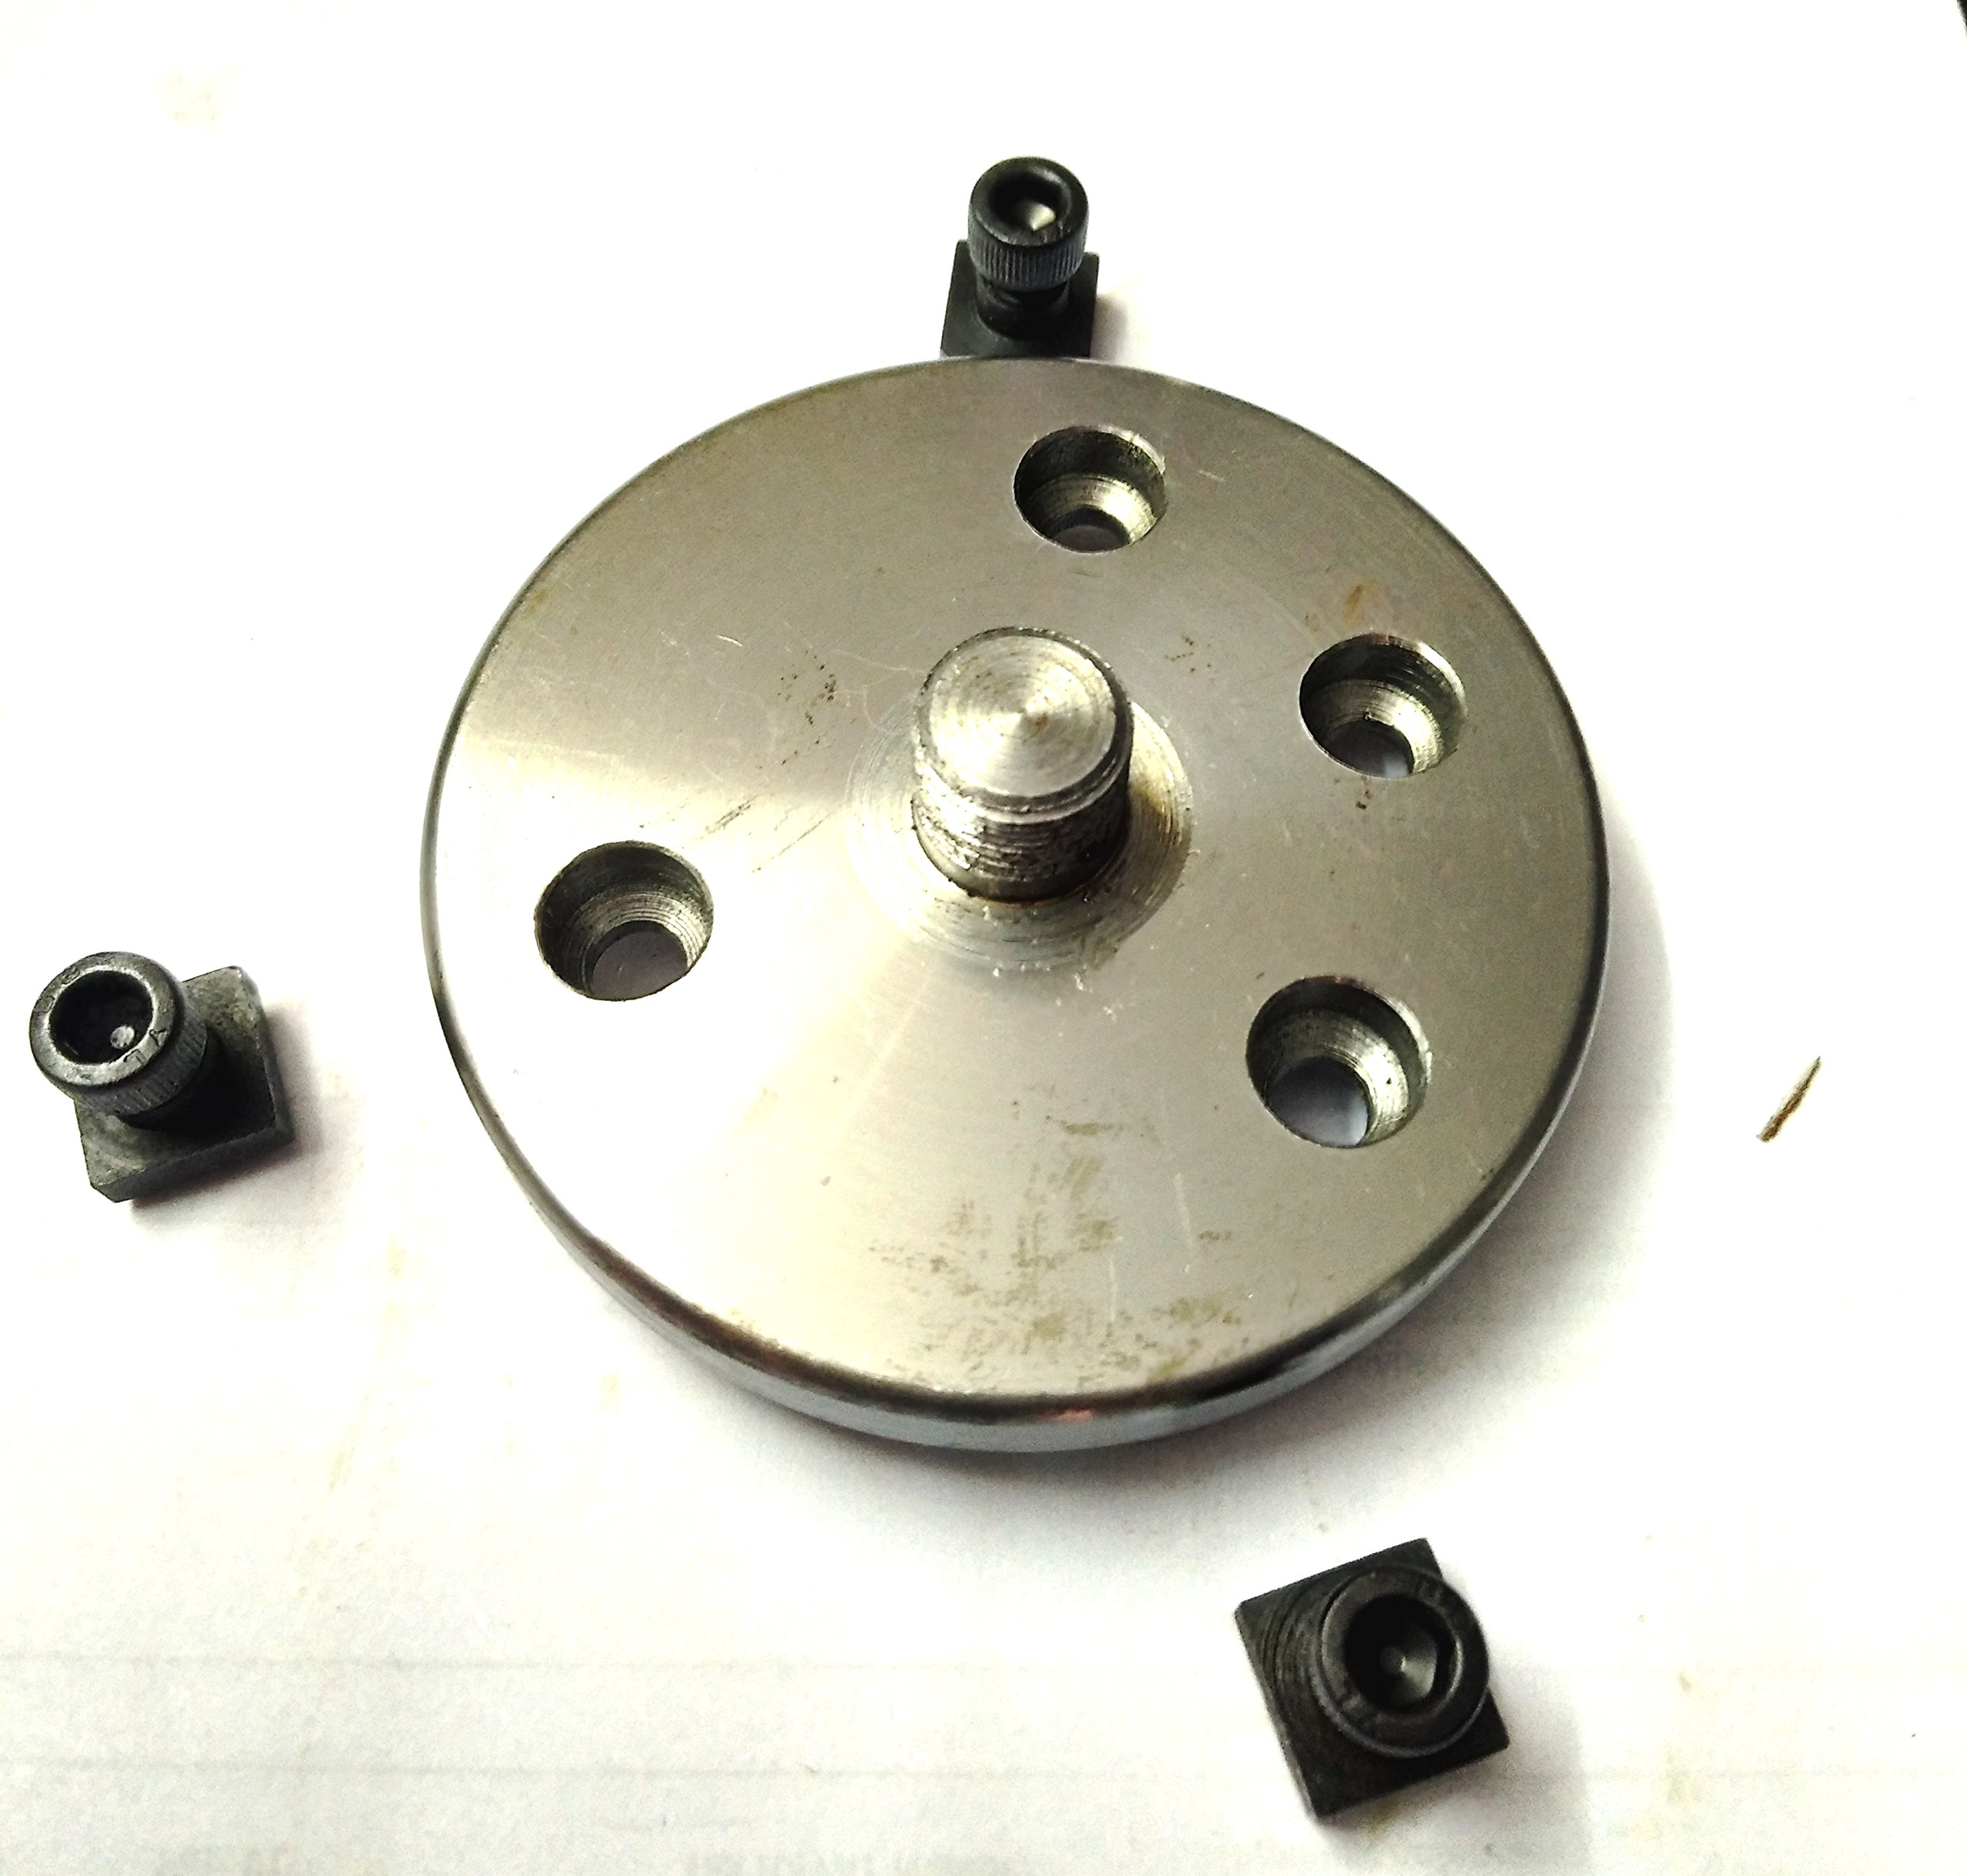 3'' Inches/80 mm Rotary Table & 65 mm 3 Jaws Self Centering Chuck+ steel Back Plate+ 3x M6 T-nuts Bolts-Metalworking, Engineering Indexing Milling Kit by Global Tools (Image #4)